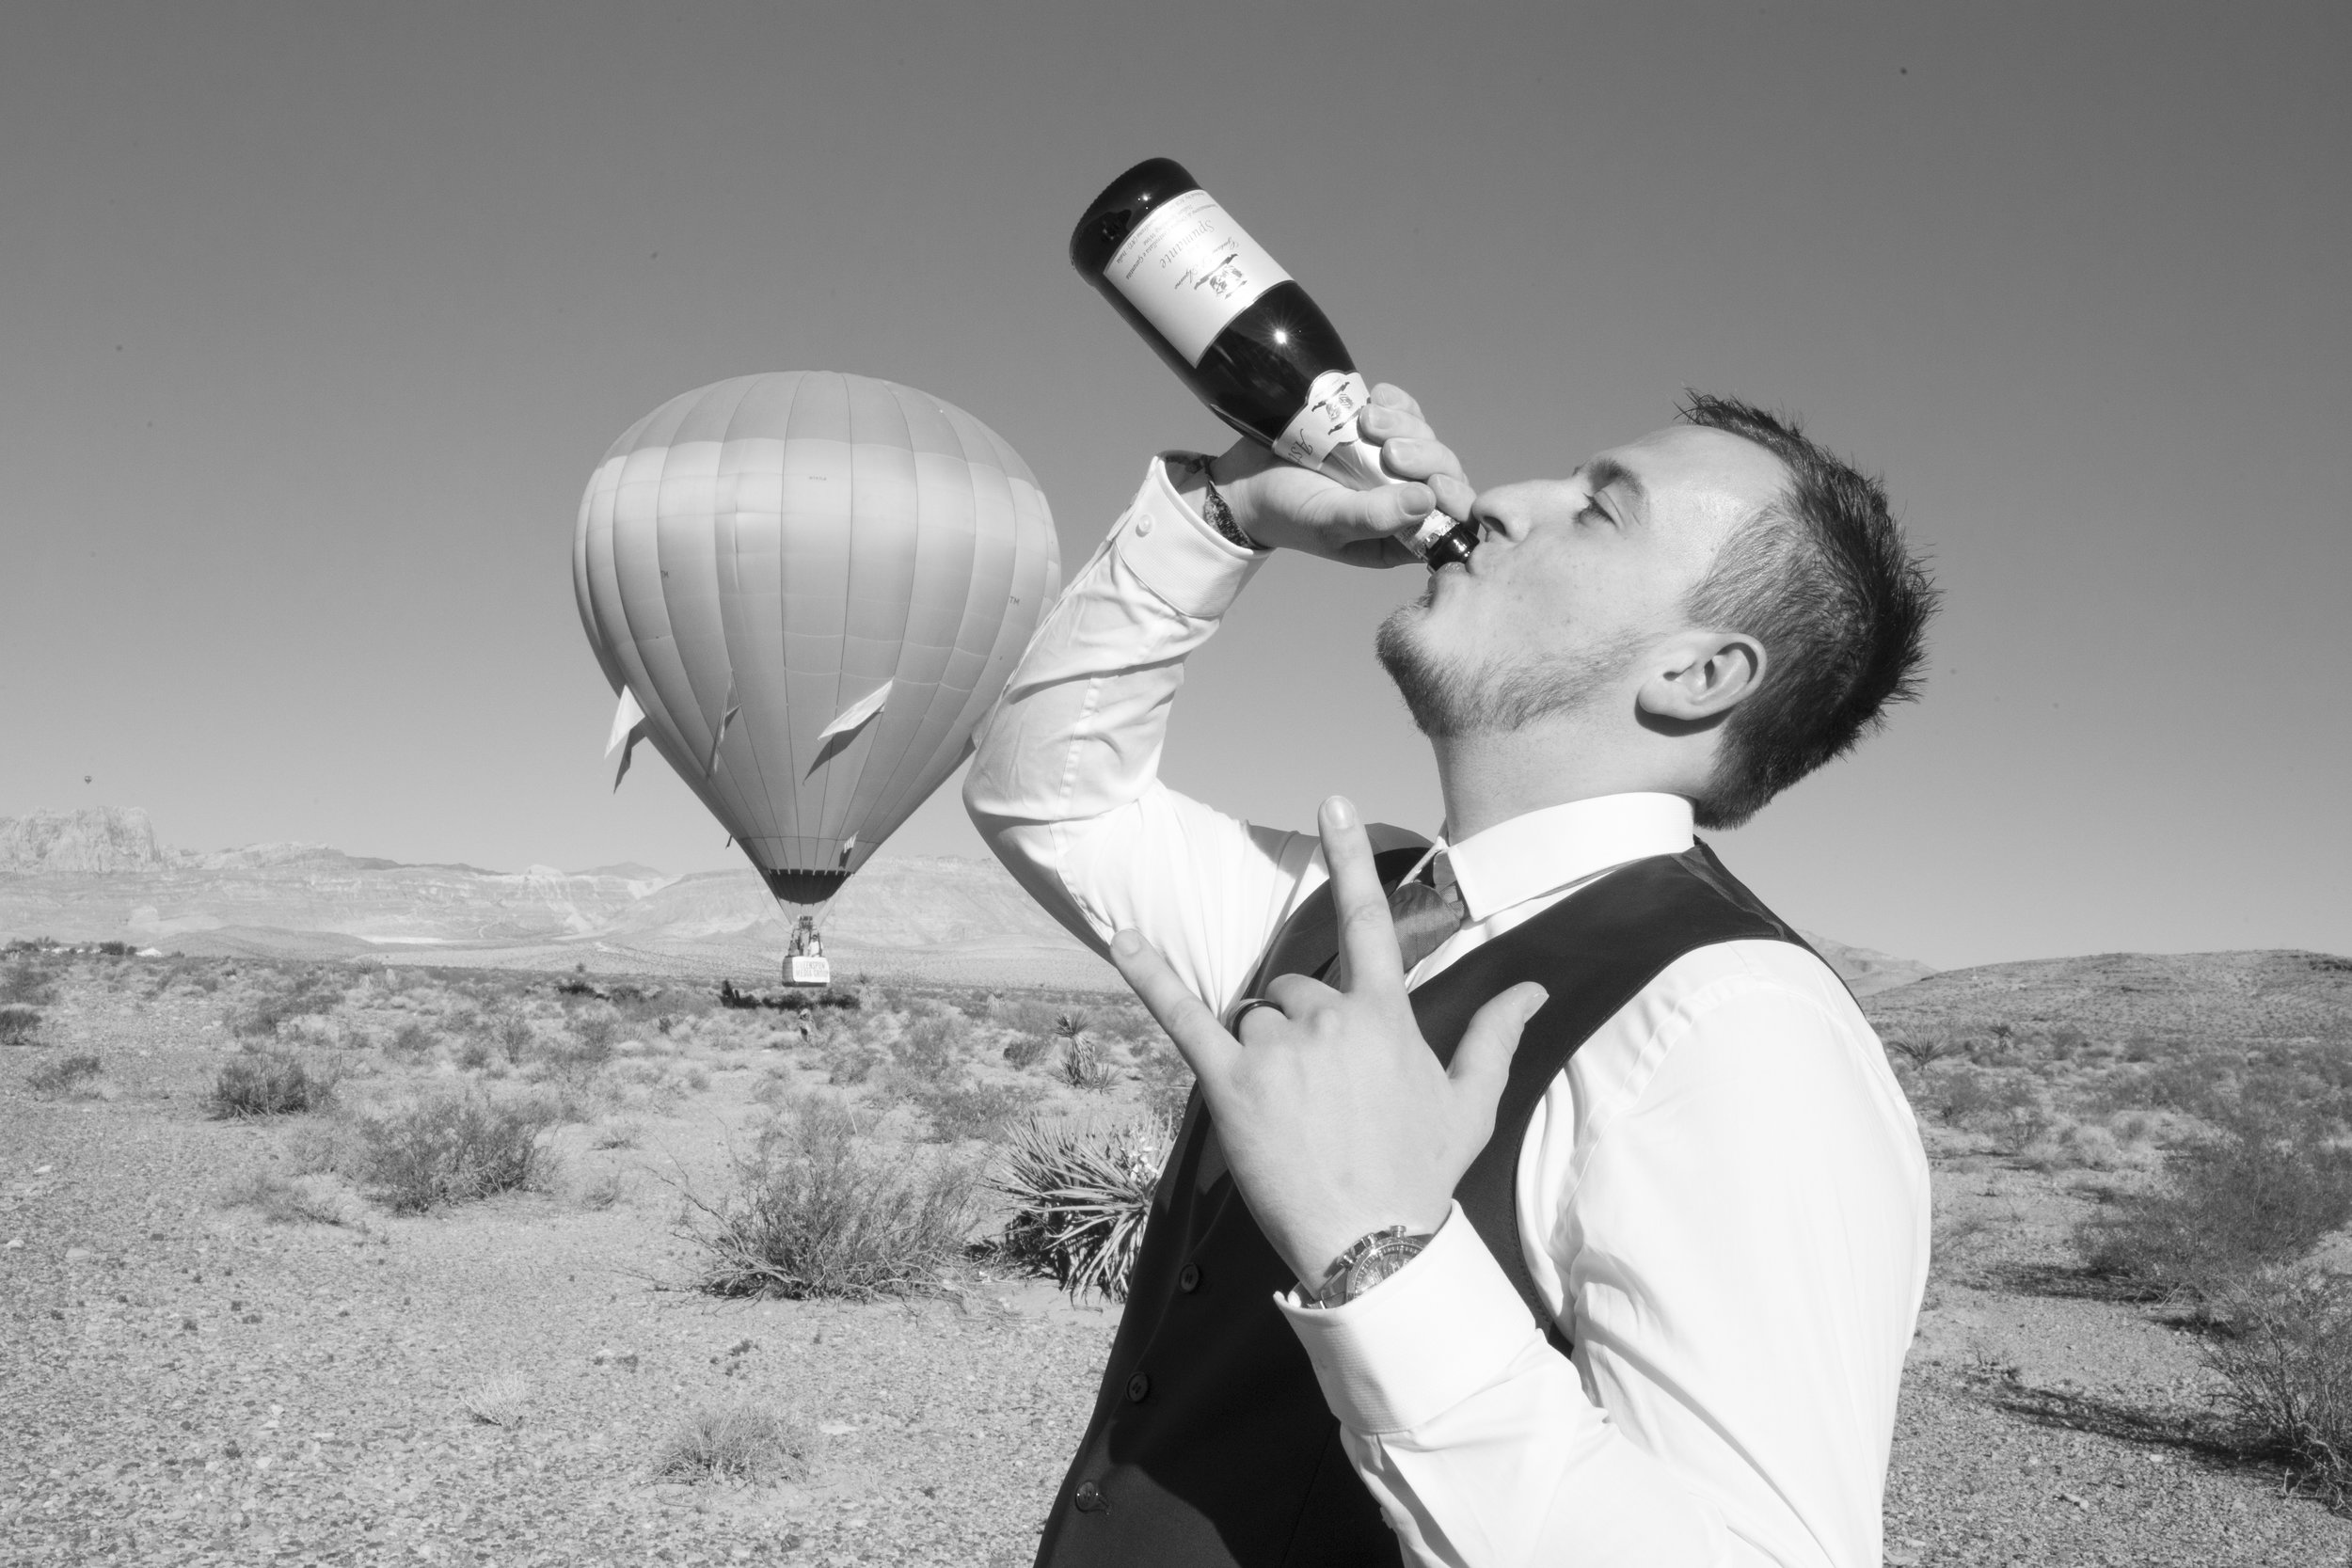 las_vegas_wedding_photography_love_is_in_the_air_ballooning_hot_balloon_photographer_casey_jade_4.jpg